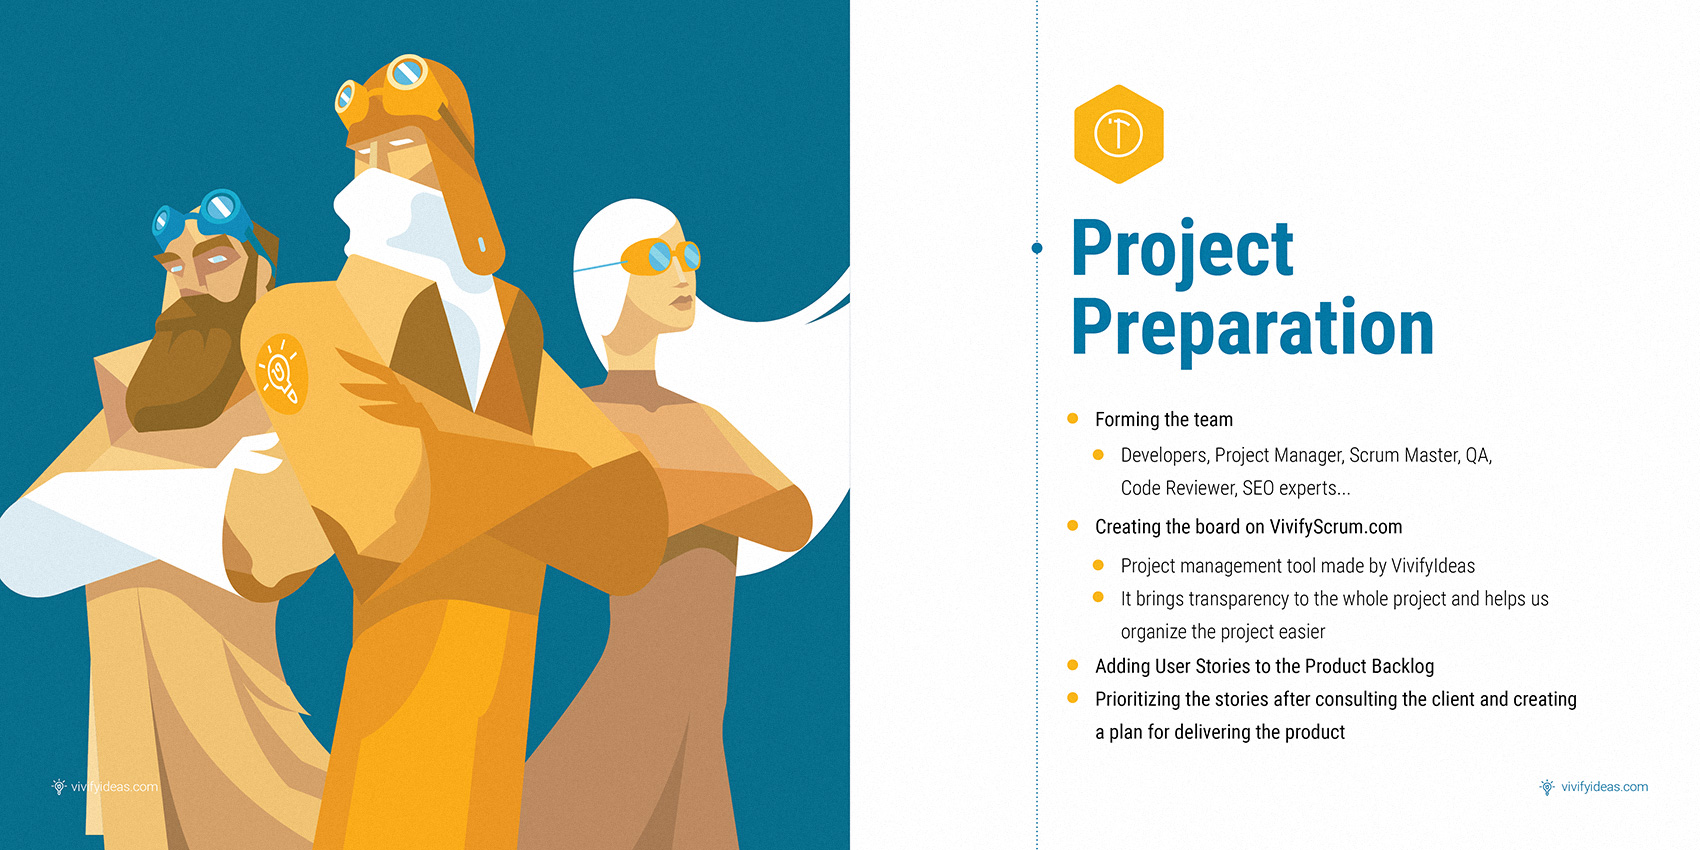 Project-Development-Lifecycle Project Preparation.jpg